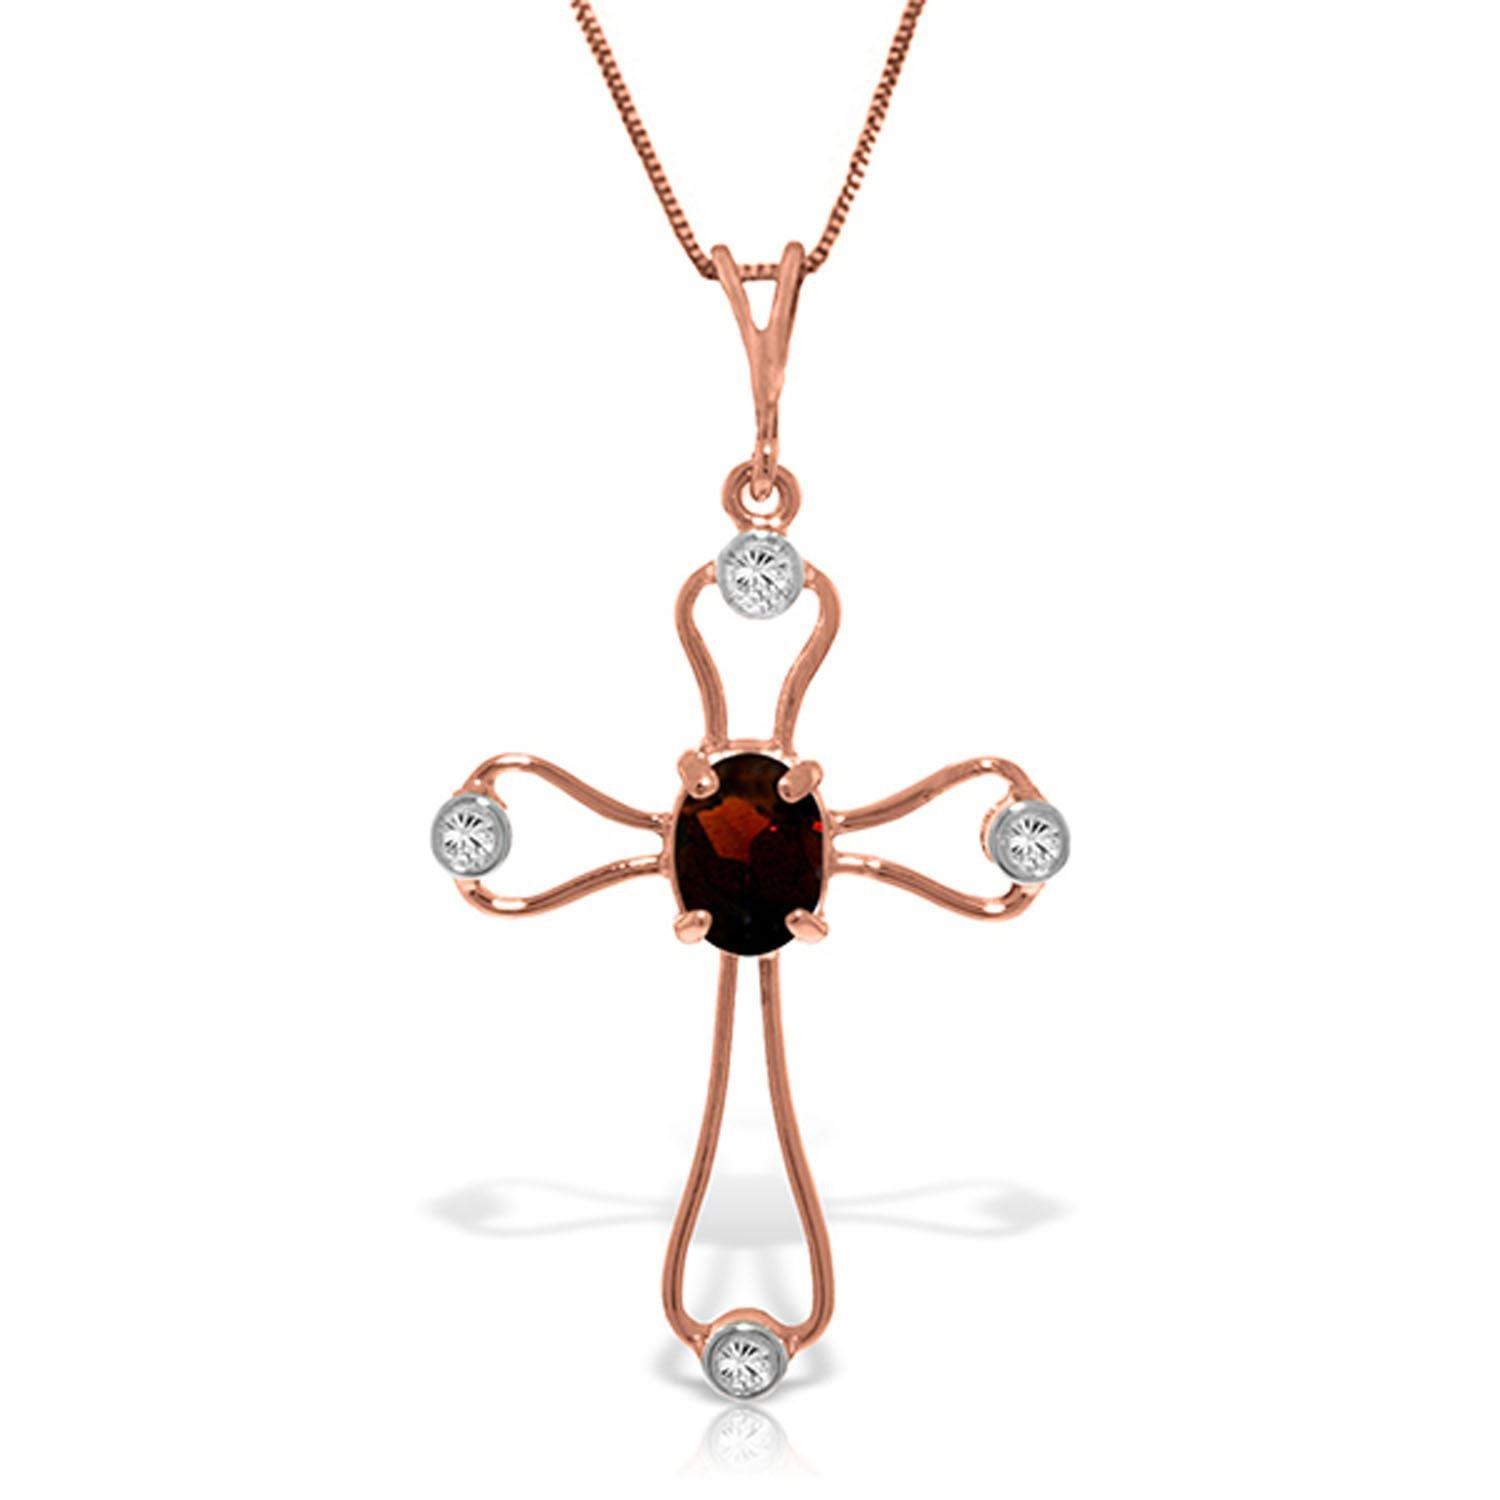 ALARRI 14K Solid Rose Gold Cross Necklace w/ Natural Diamonds & Garnet with 22 Inch Chain Length